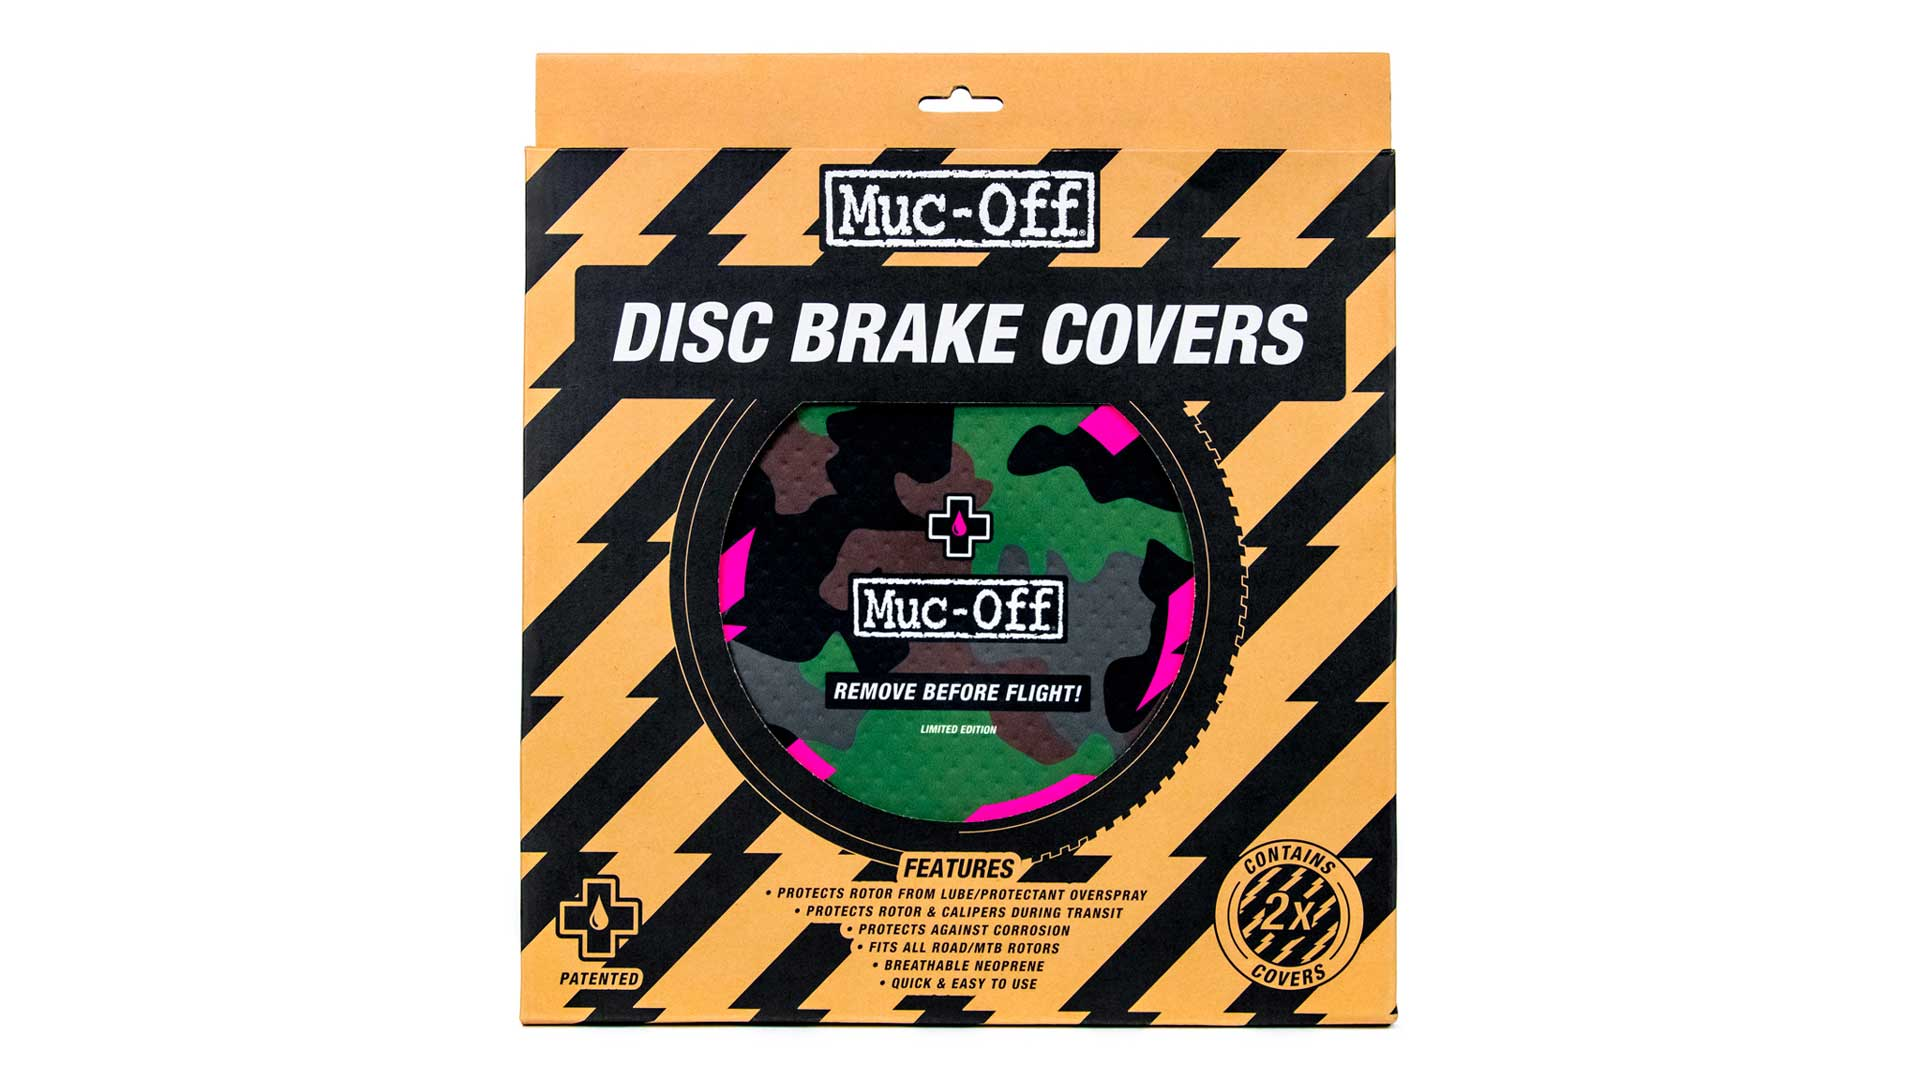 camo disc brake covers in box